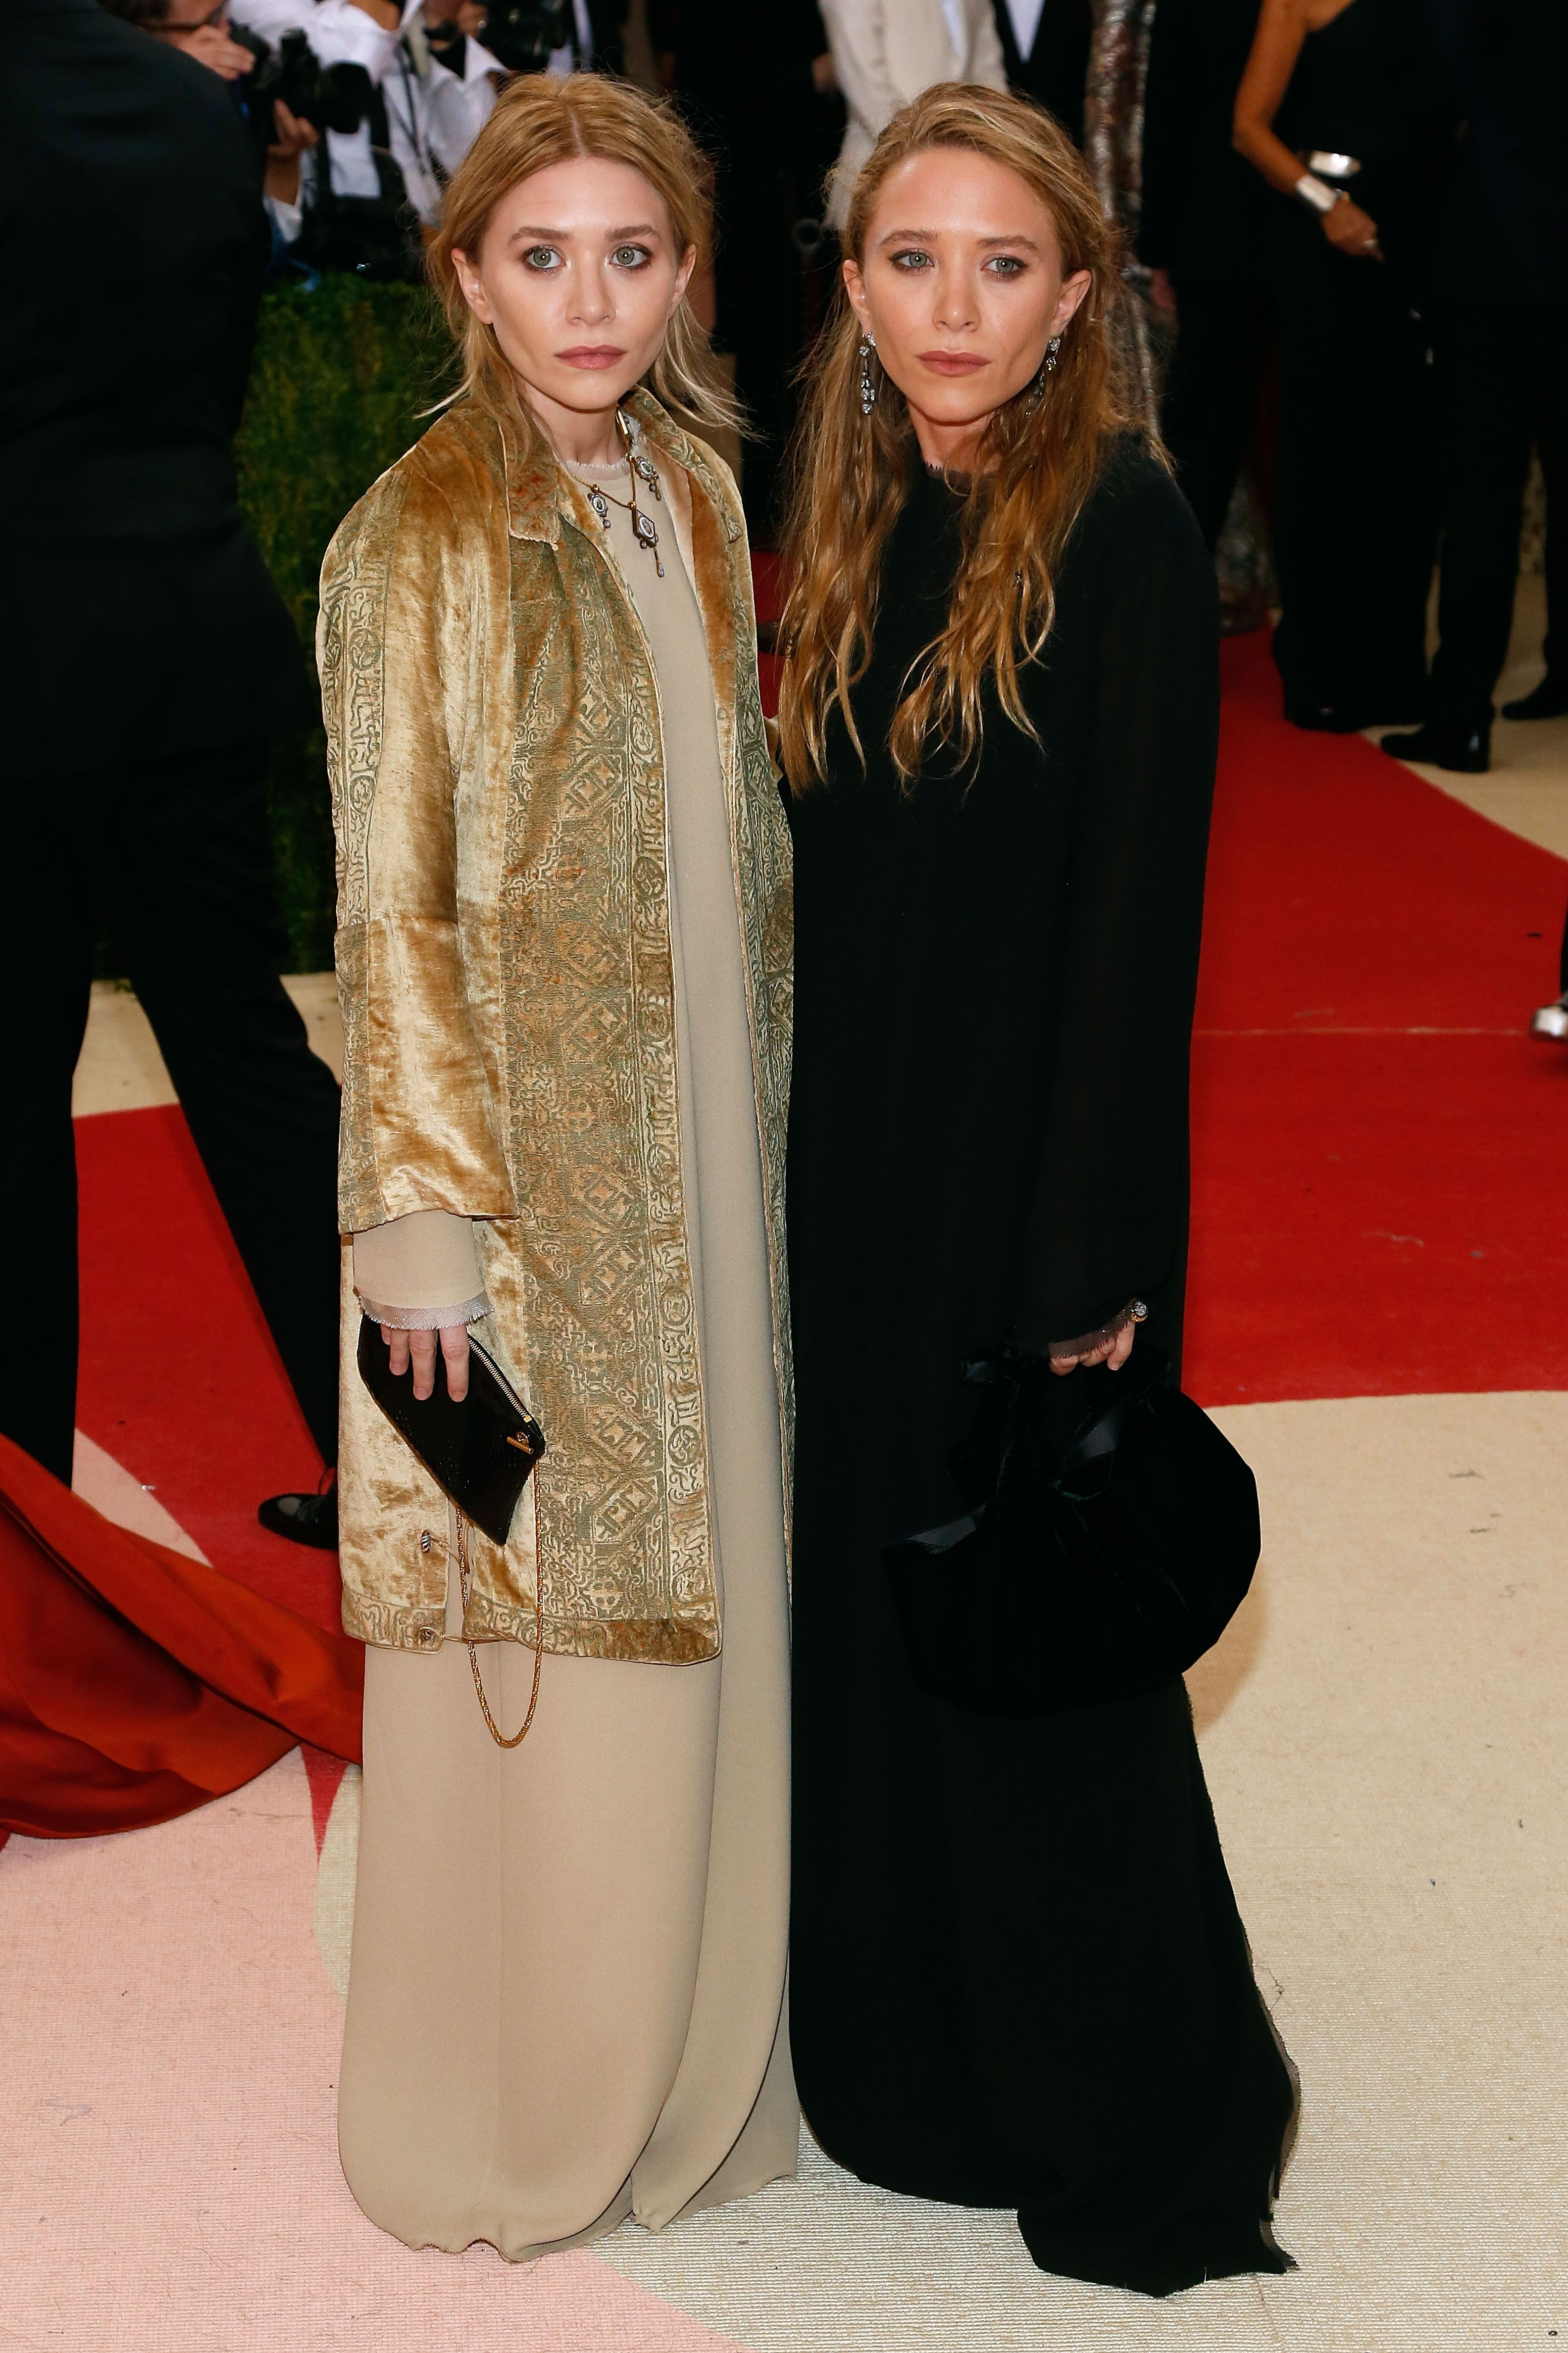 Mary-Kate and Ashley Olsen attend 'Manus x Machina: Fashion in an Age of Technology', May 2016 in New York